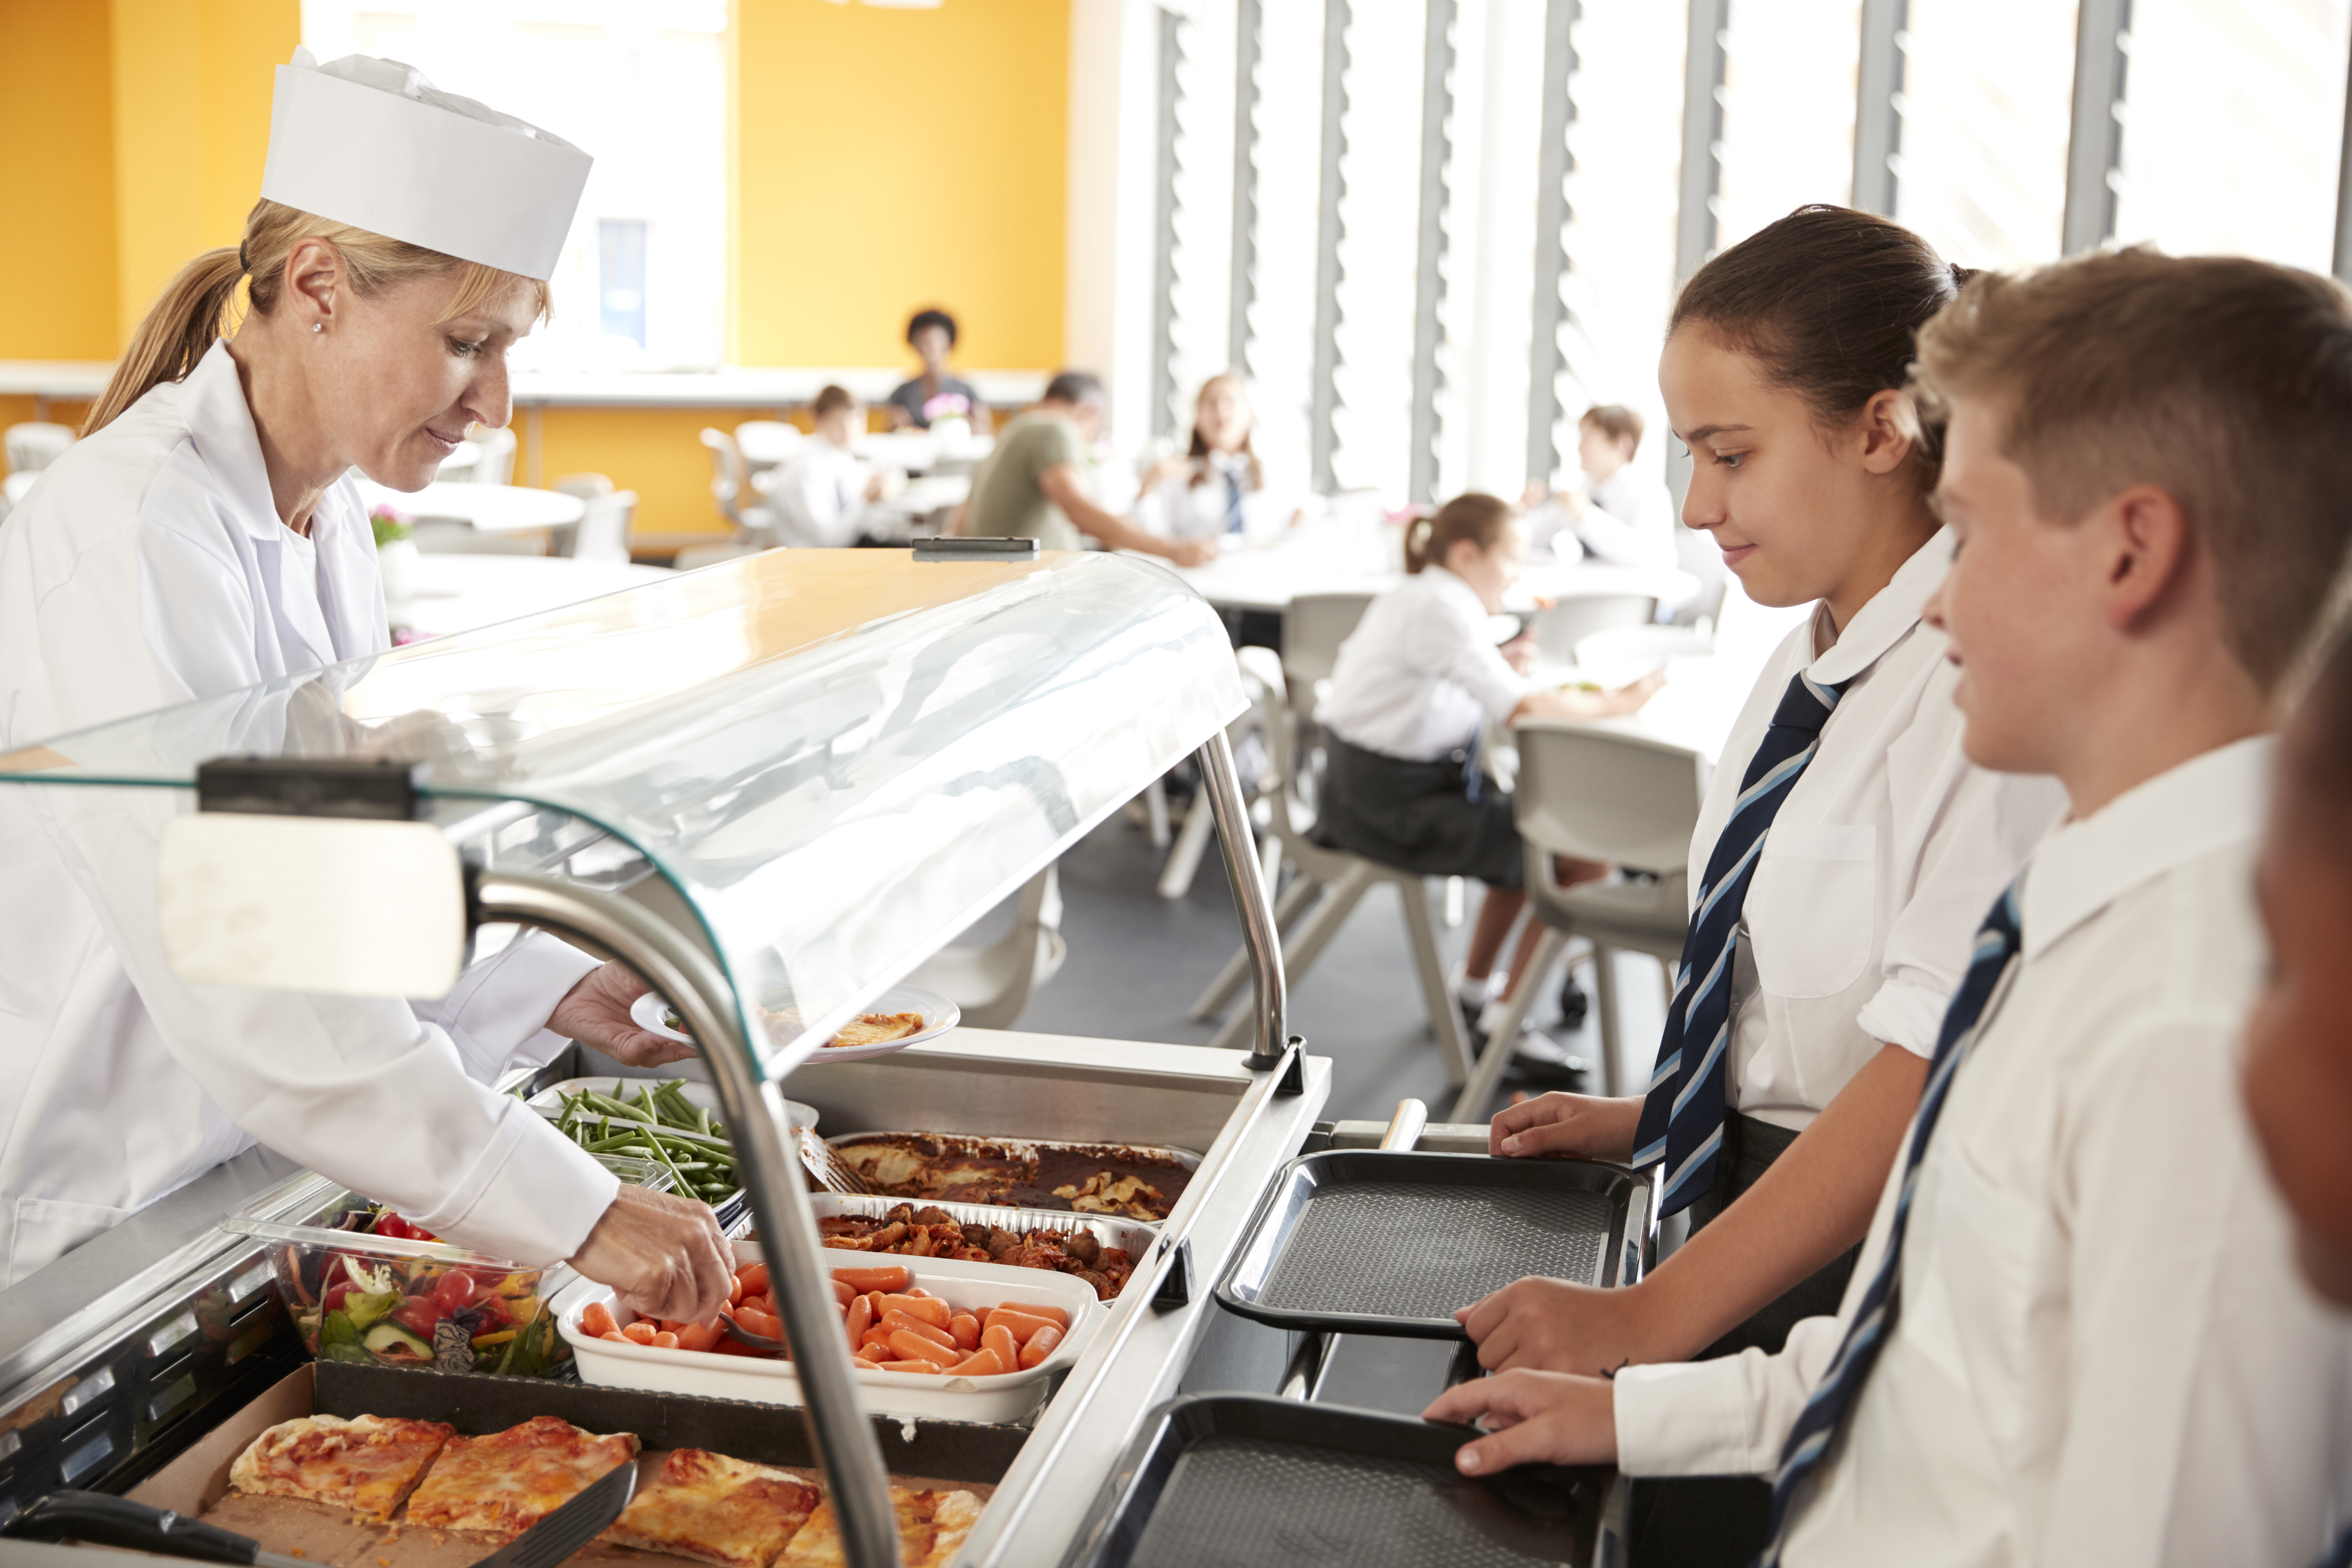 UK schools will use facial recognition to speed up lunch payments